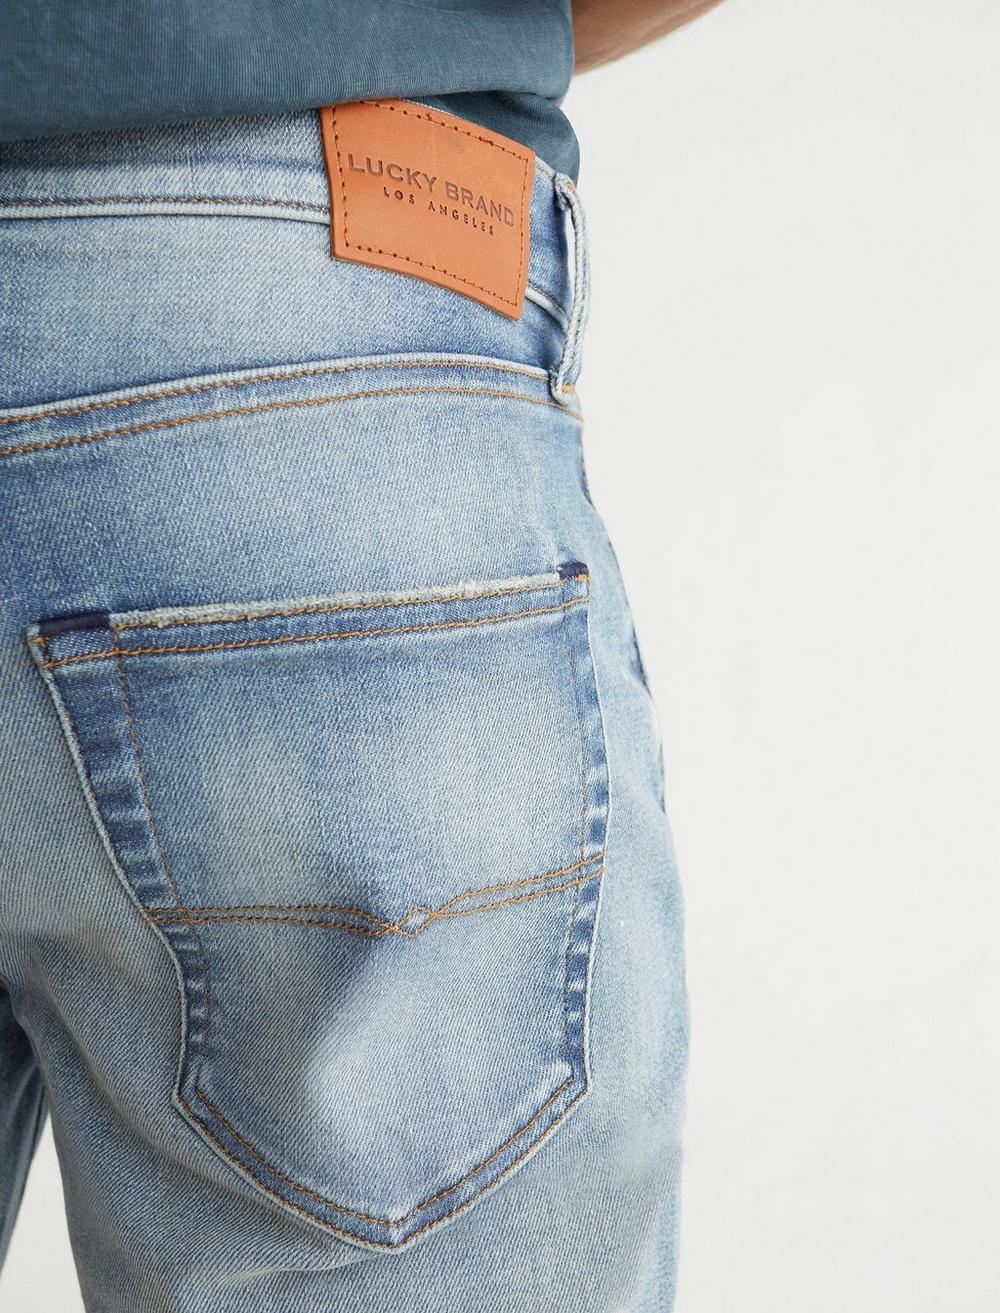 410 ATHLETIC STRAIGHT 4-WAY STRETCH JEAN, image 5